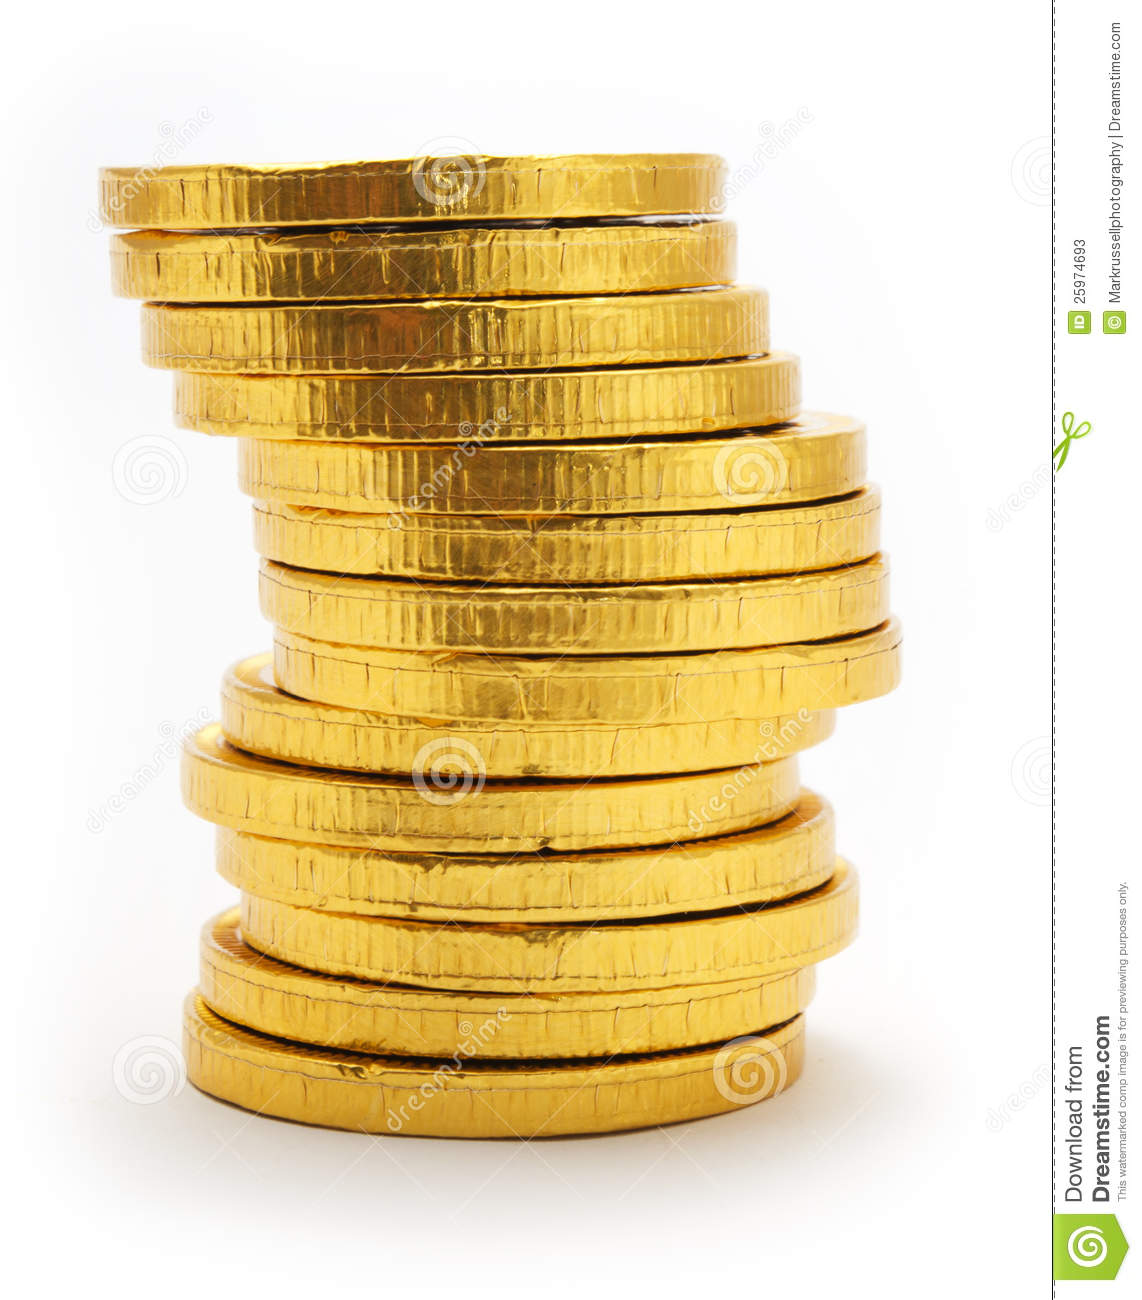 Gold Coins Stacks Clipart - Clipart Suggest